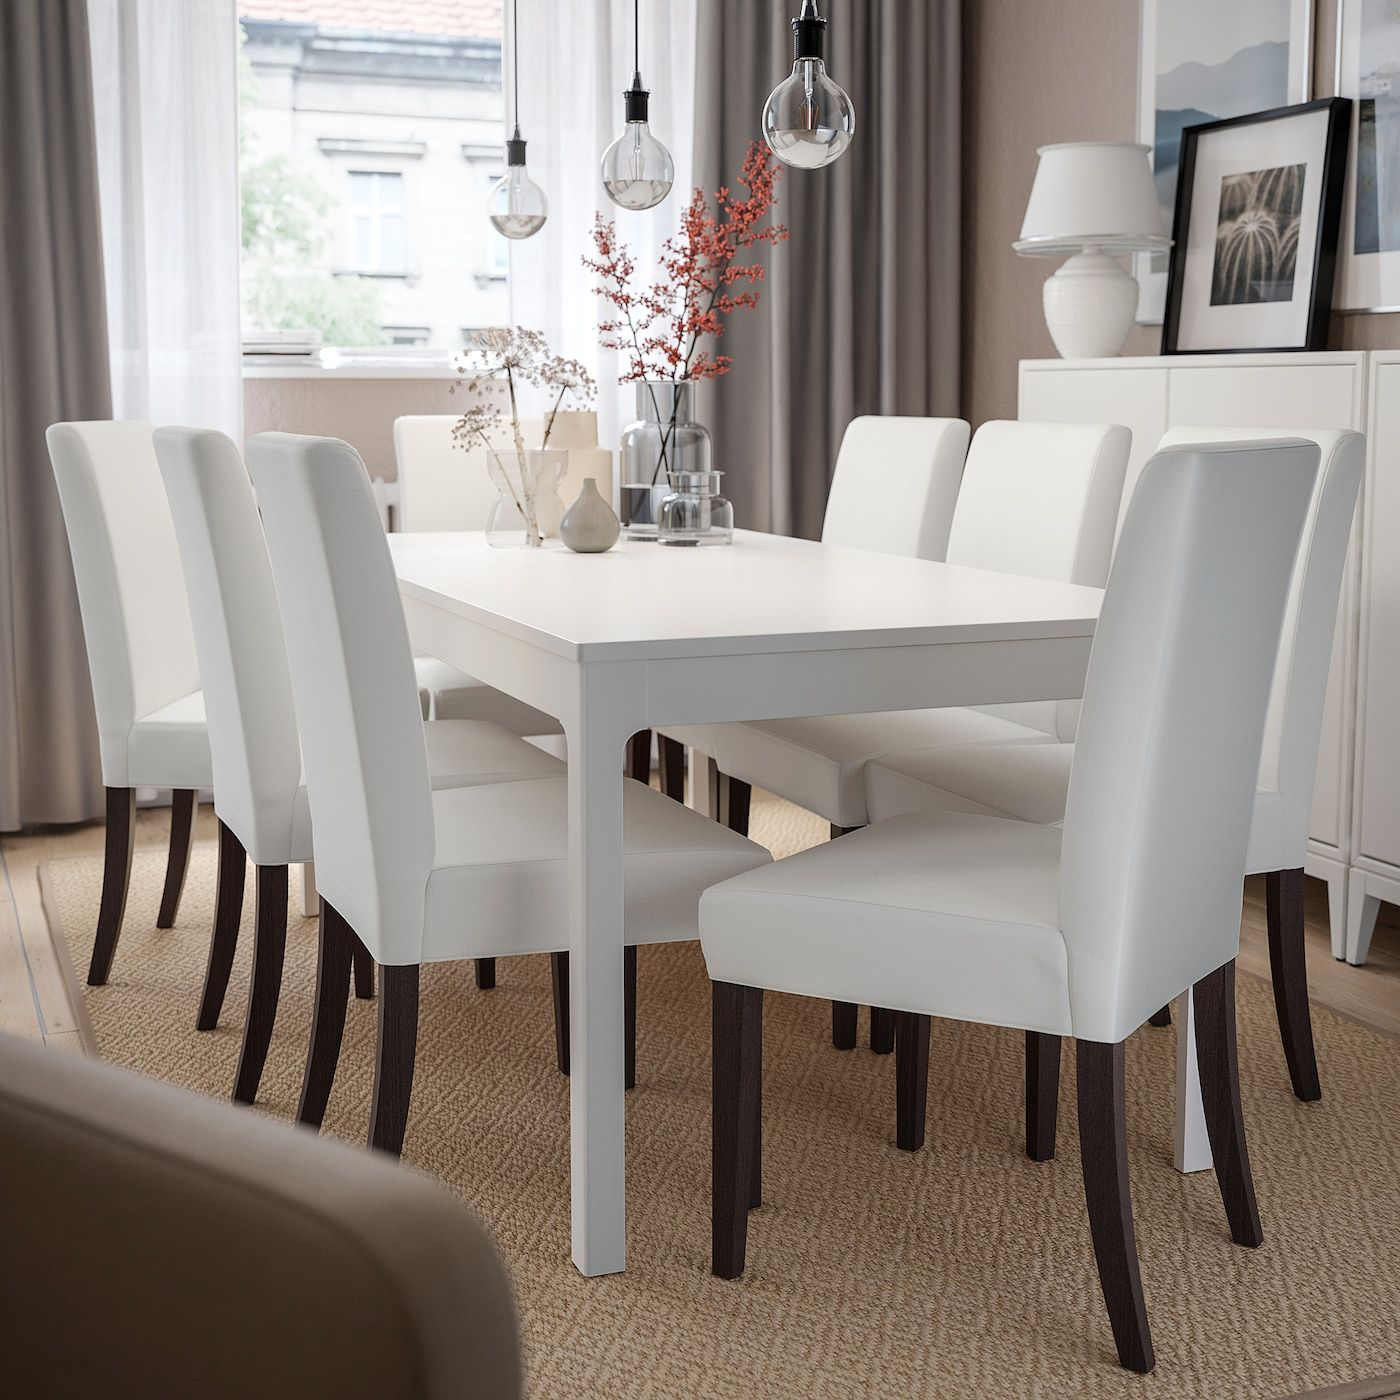 Henriksdal Chair Grasbo White Ikea Canada Ikea In 2020 Ikea Dining Chair White Dining Room Table White Dining Table Modern